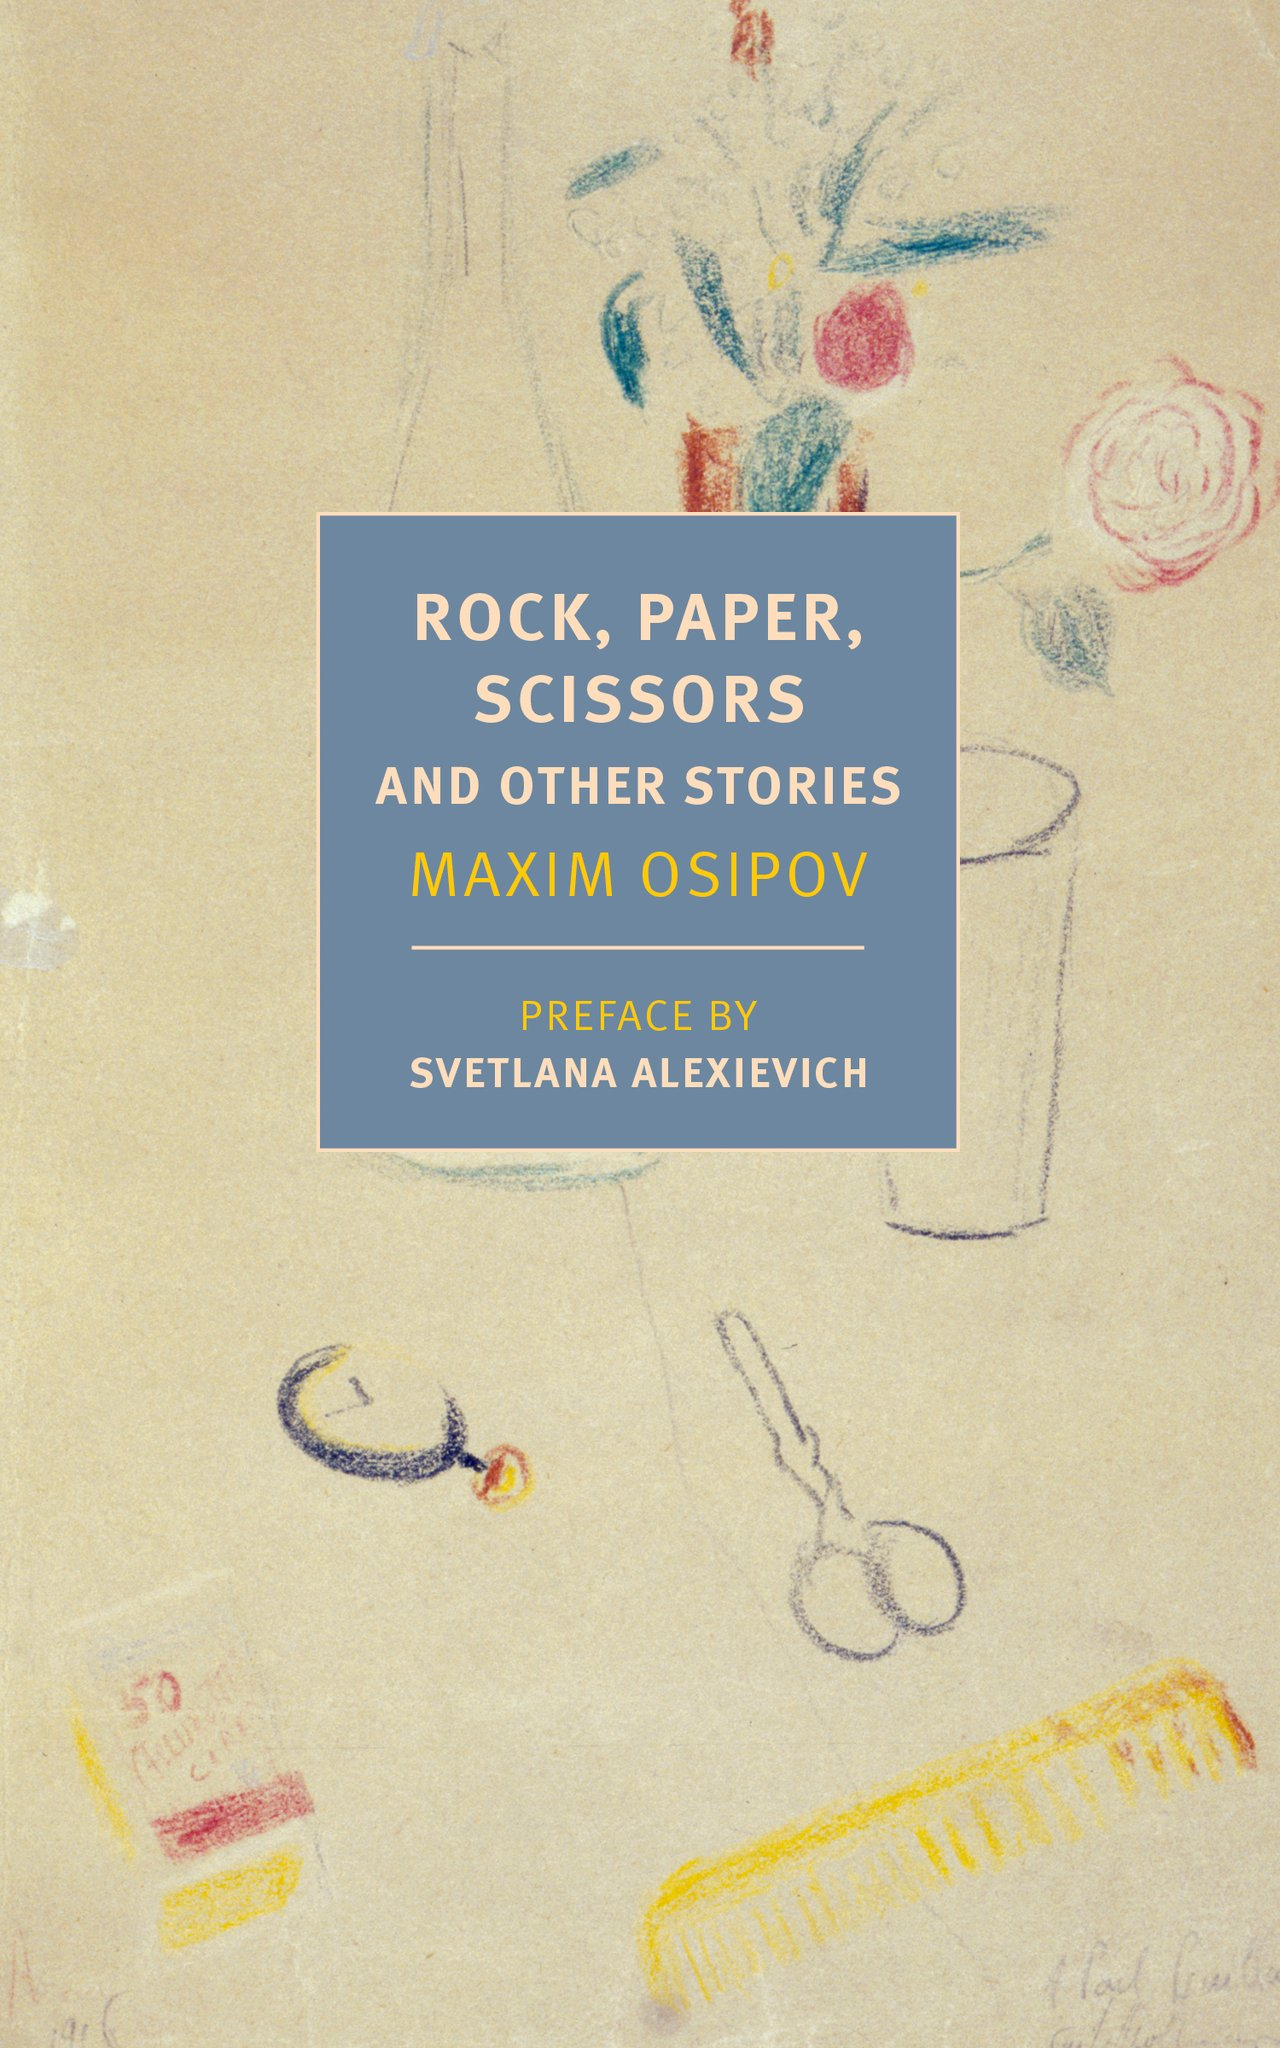 Rock, Paper, Scissors and Other Stories  by Maxim Osipov  tr. Boris Dralyuk, Alex Fleming, and Anne Marie Jackson  (NYRB, April 2019)    Reviewed by Hilah Kohen